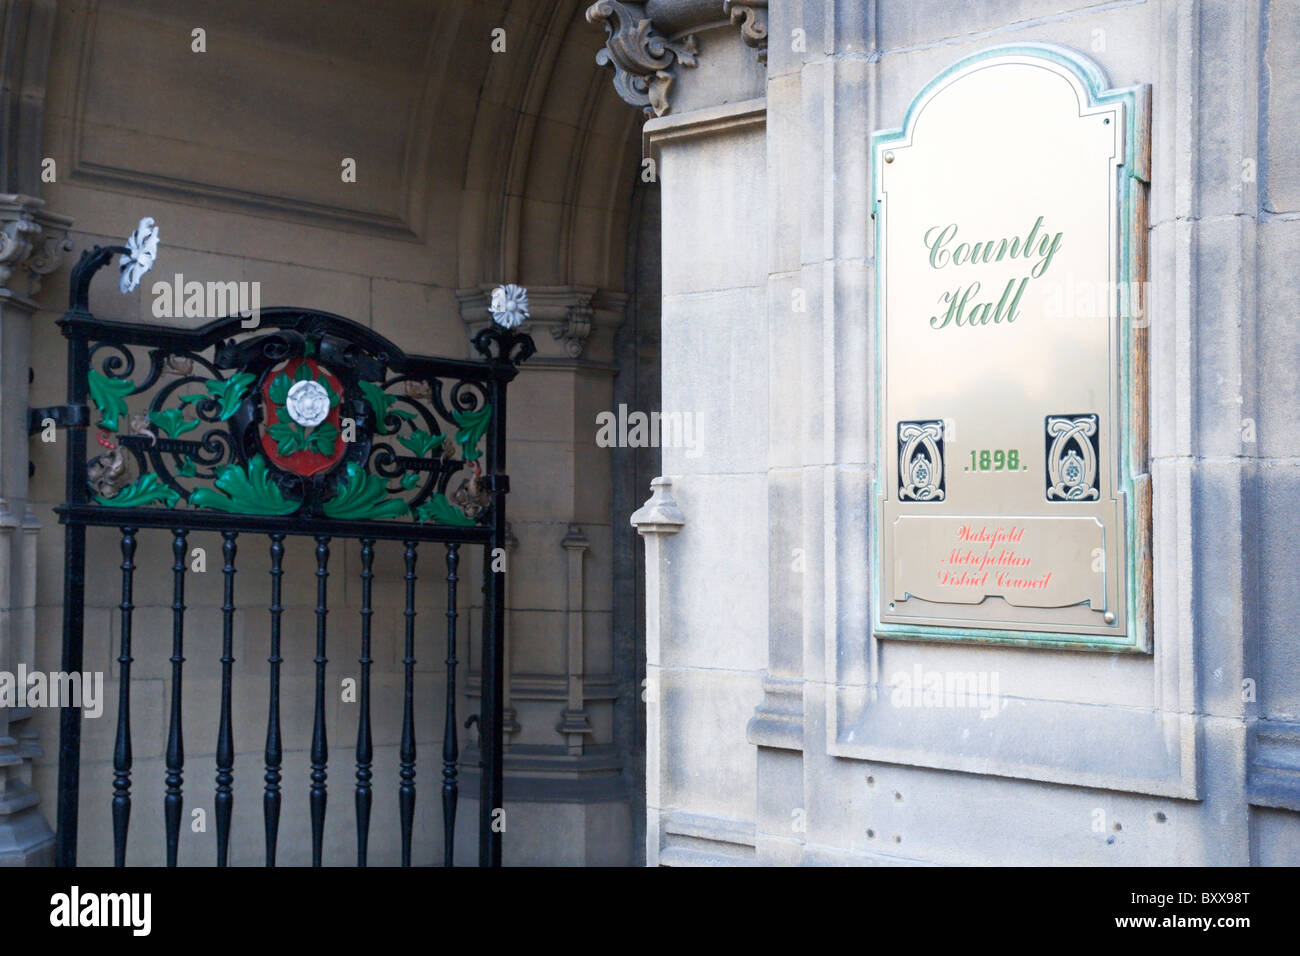 County Hall Wakefield West Yorkshire England - Stock Image